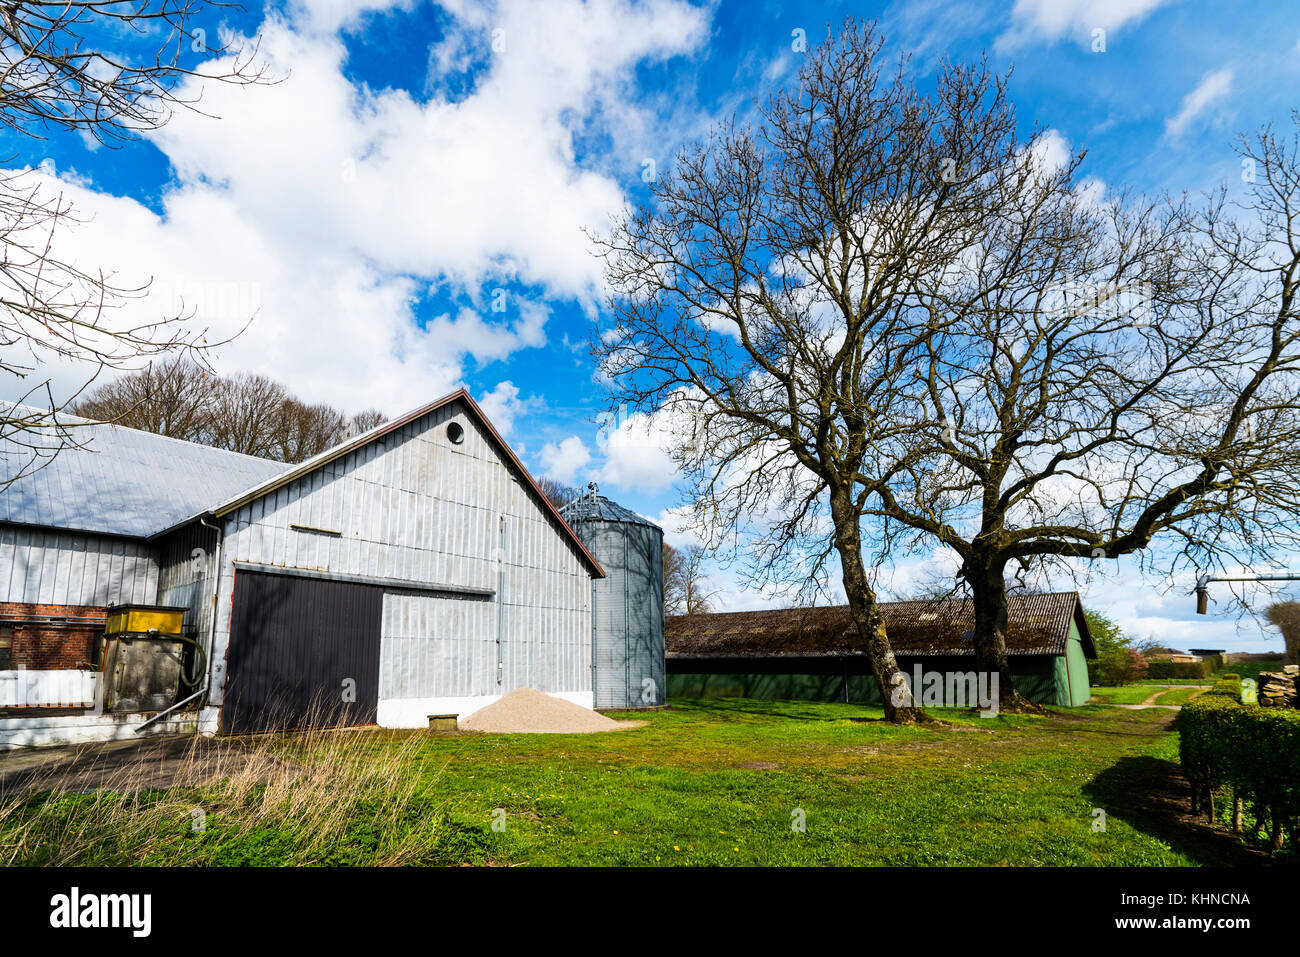 Rural barnyard with a silo and green grass in the spring - Stock Image